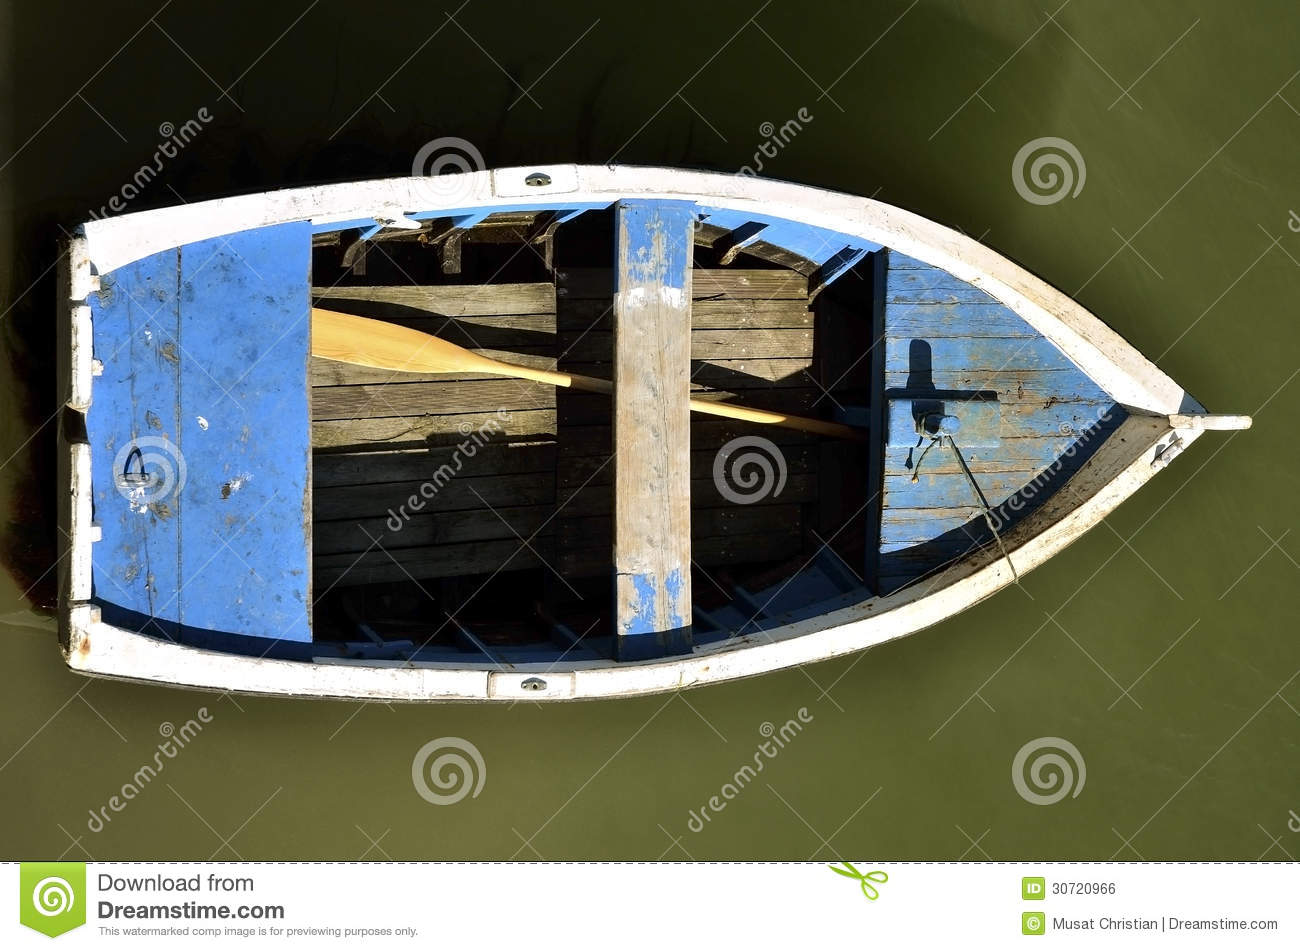 Small Boat Seen From Above Royalty Free Stock Image - Image: 30720966